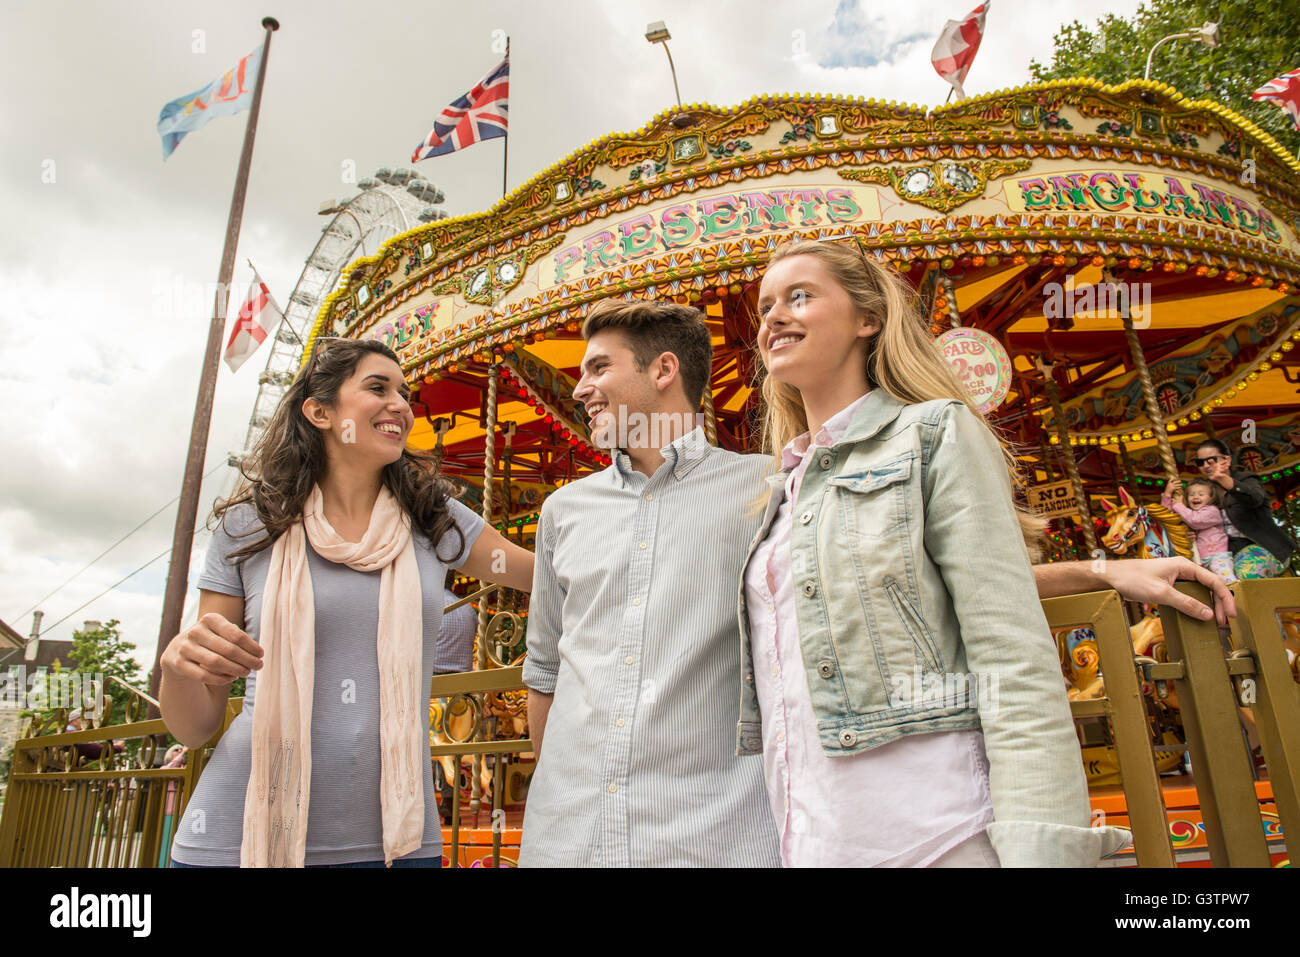 revolving chair thames rustic wingback carousel on the south bank stock photos and